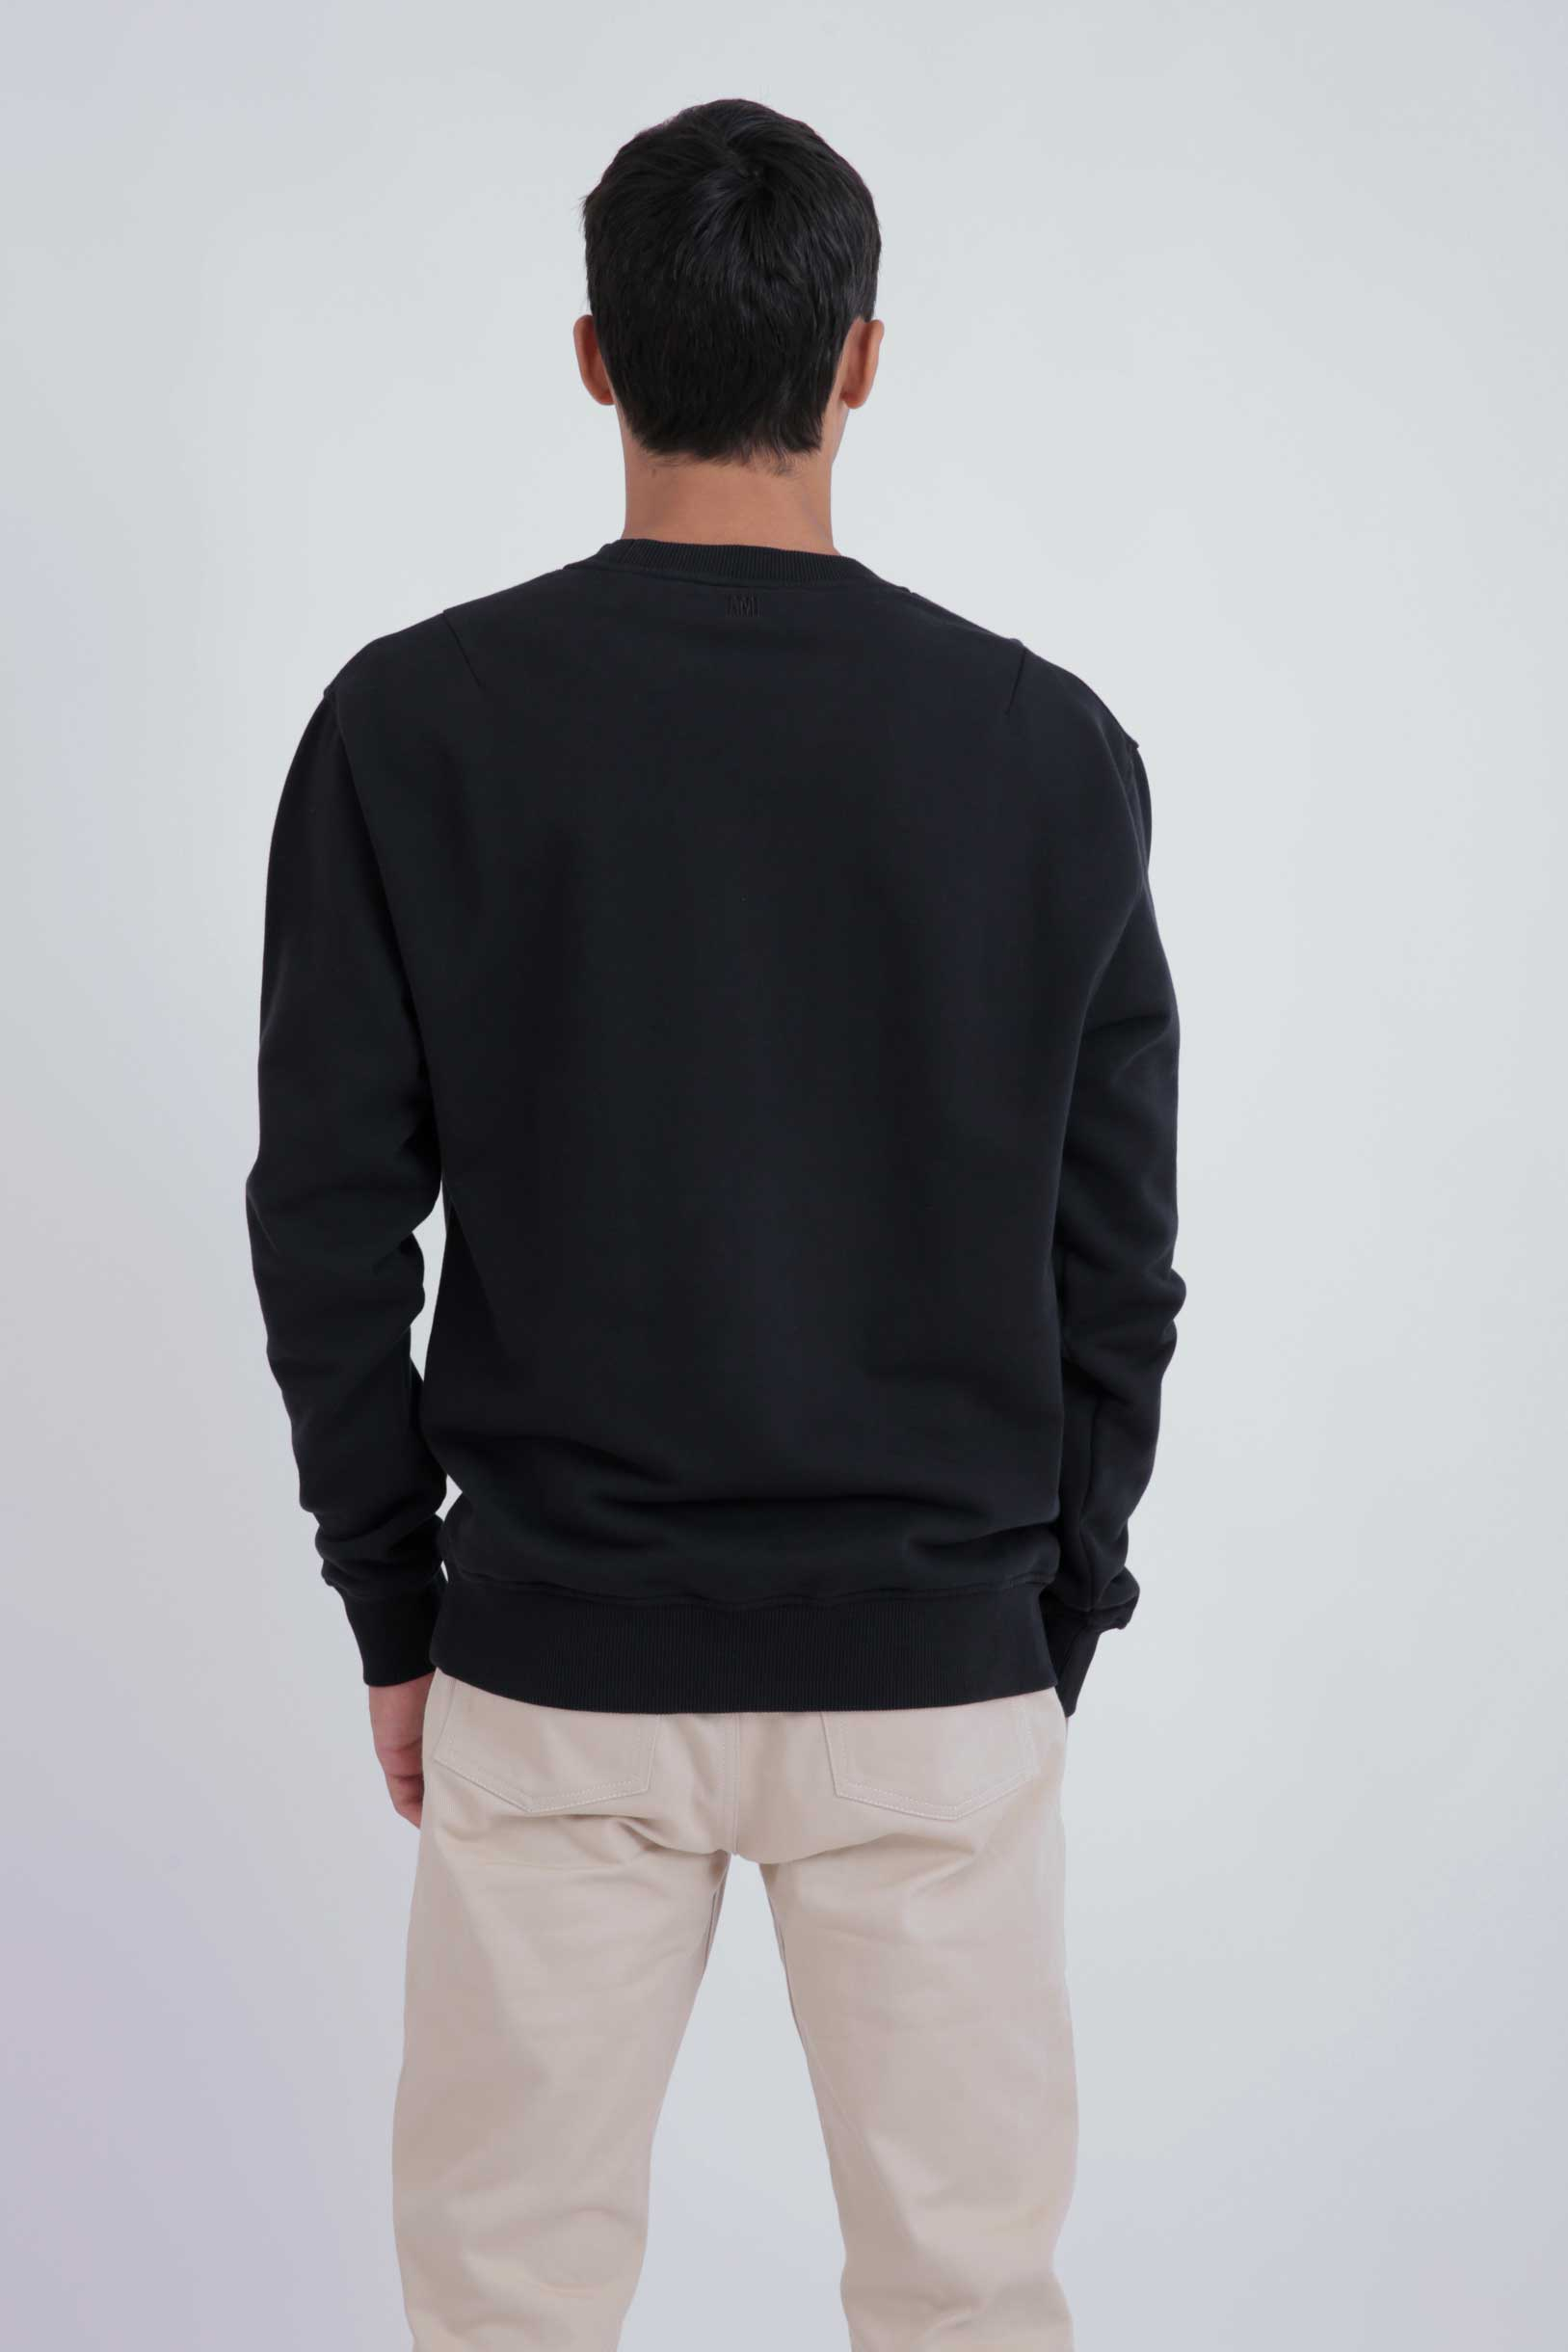 De Coeur Black Sweatshirt